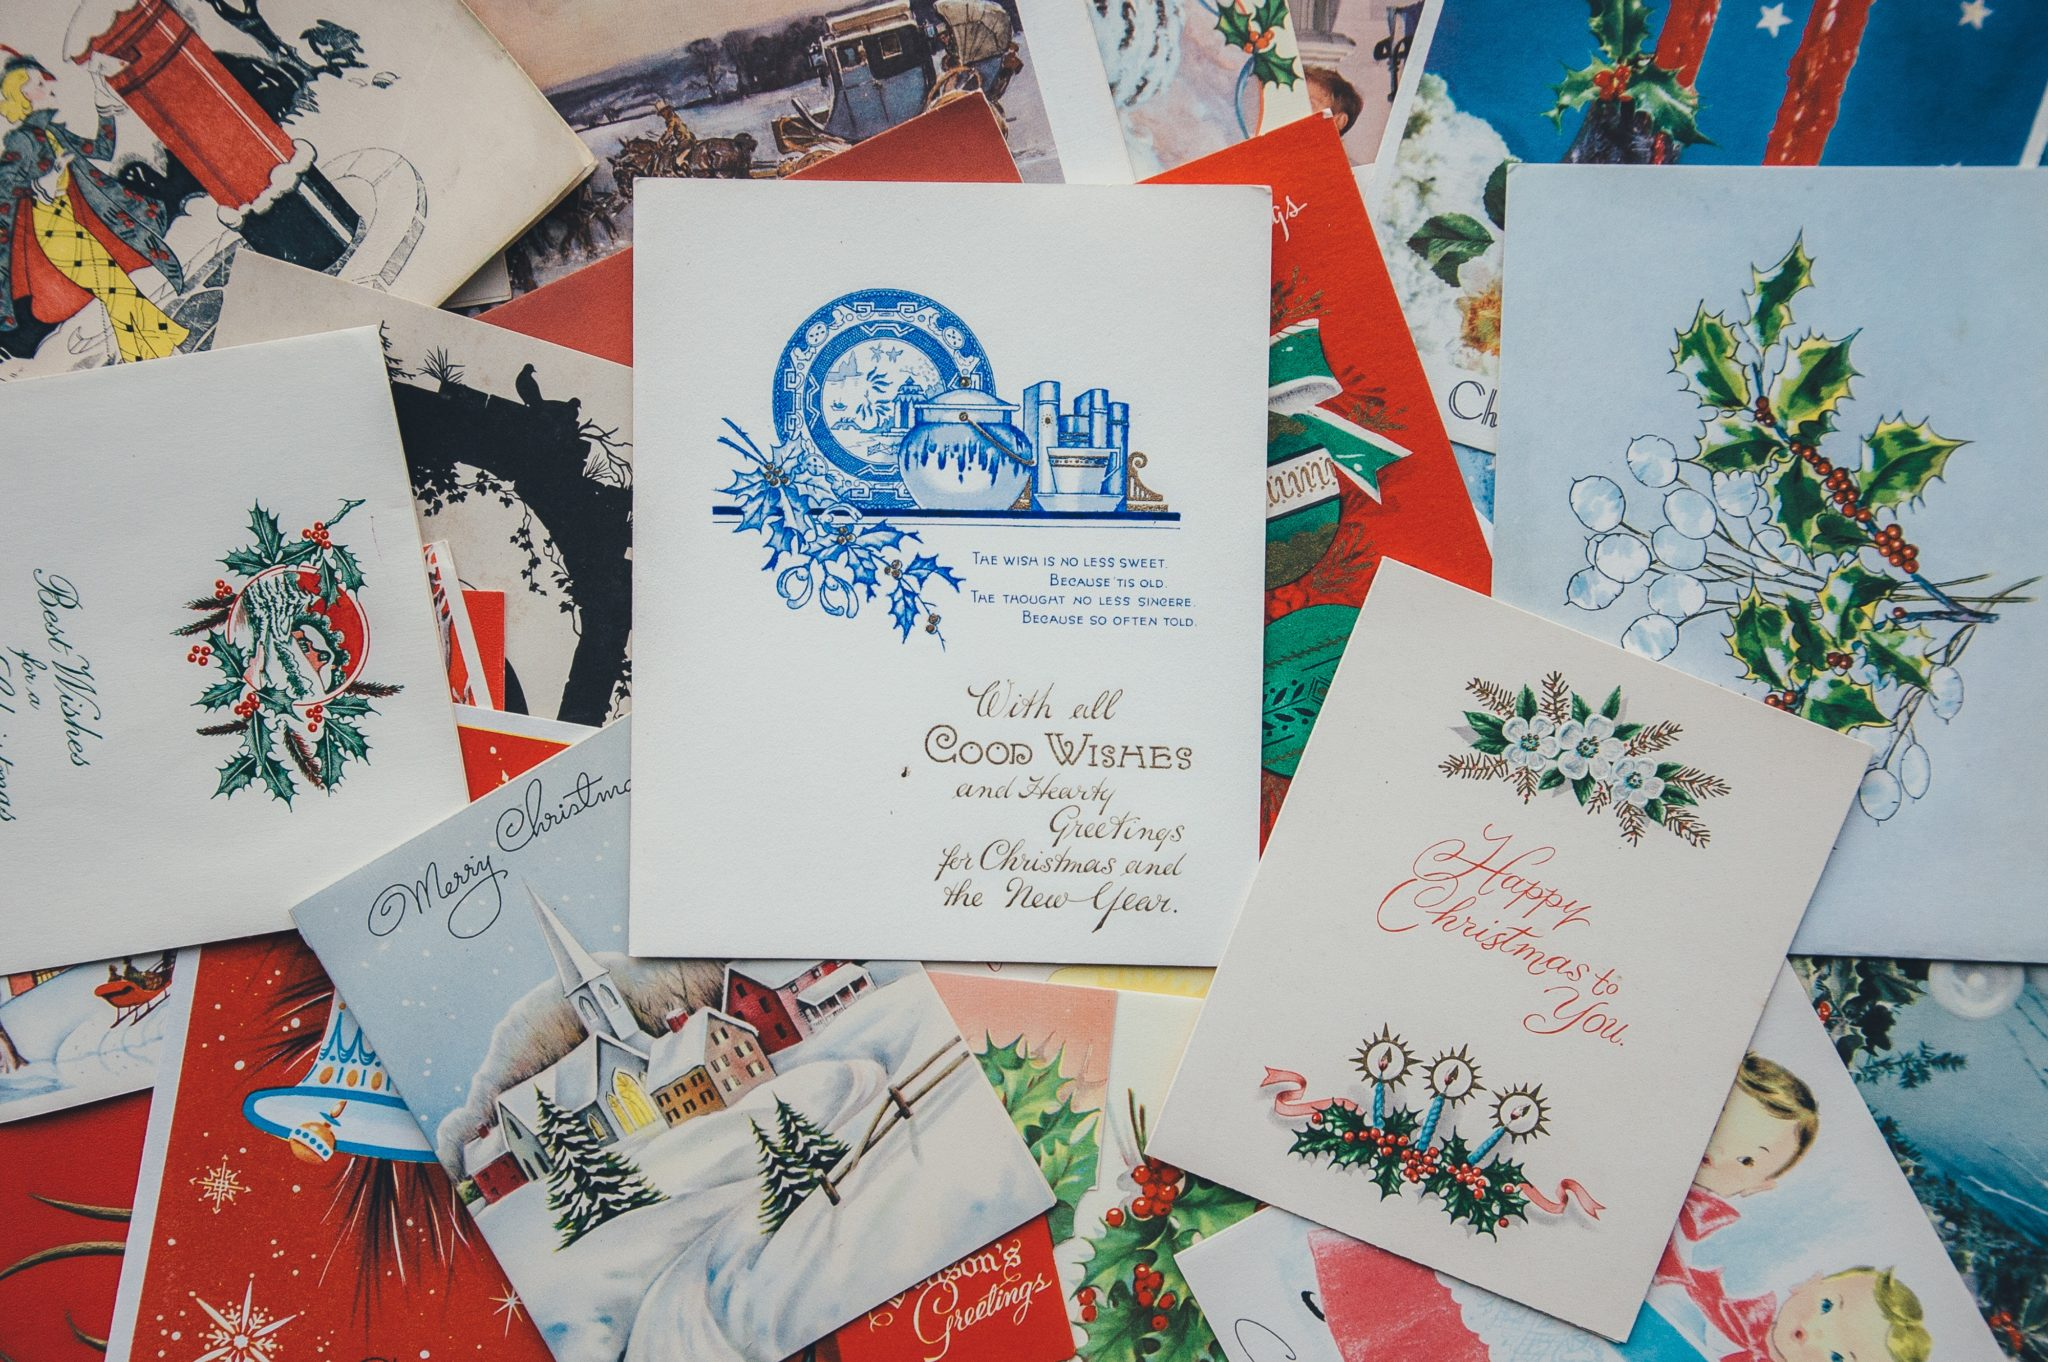 Bounce-Rubber-Bands_Greeting-Cards-Industry_Christmas-Festive